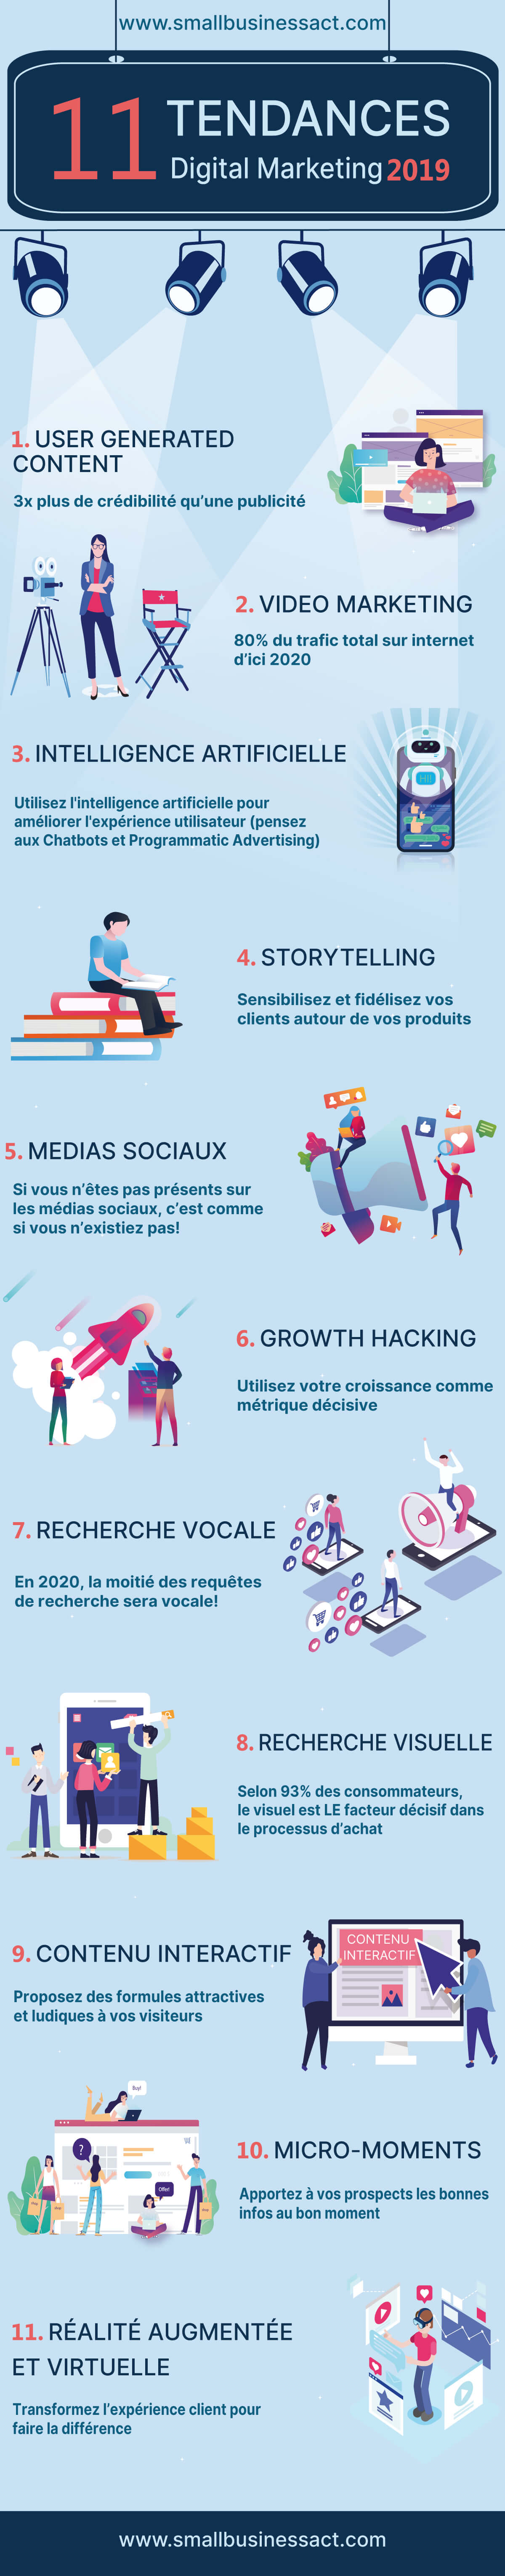 tendances-marketing-digital-2019